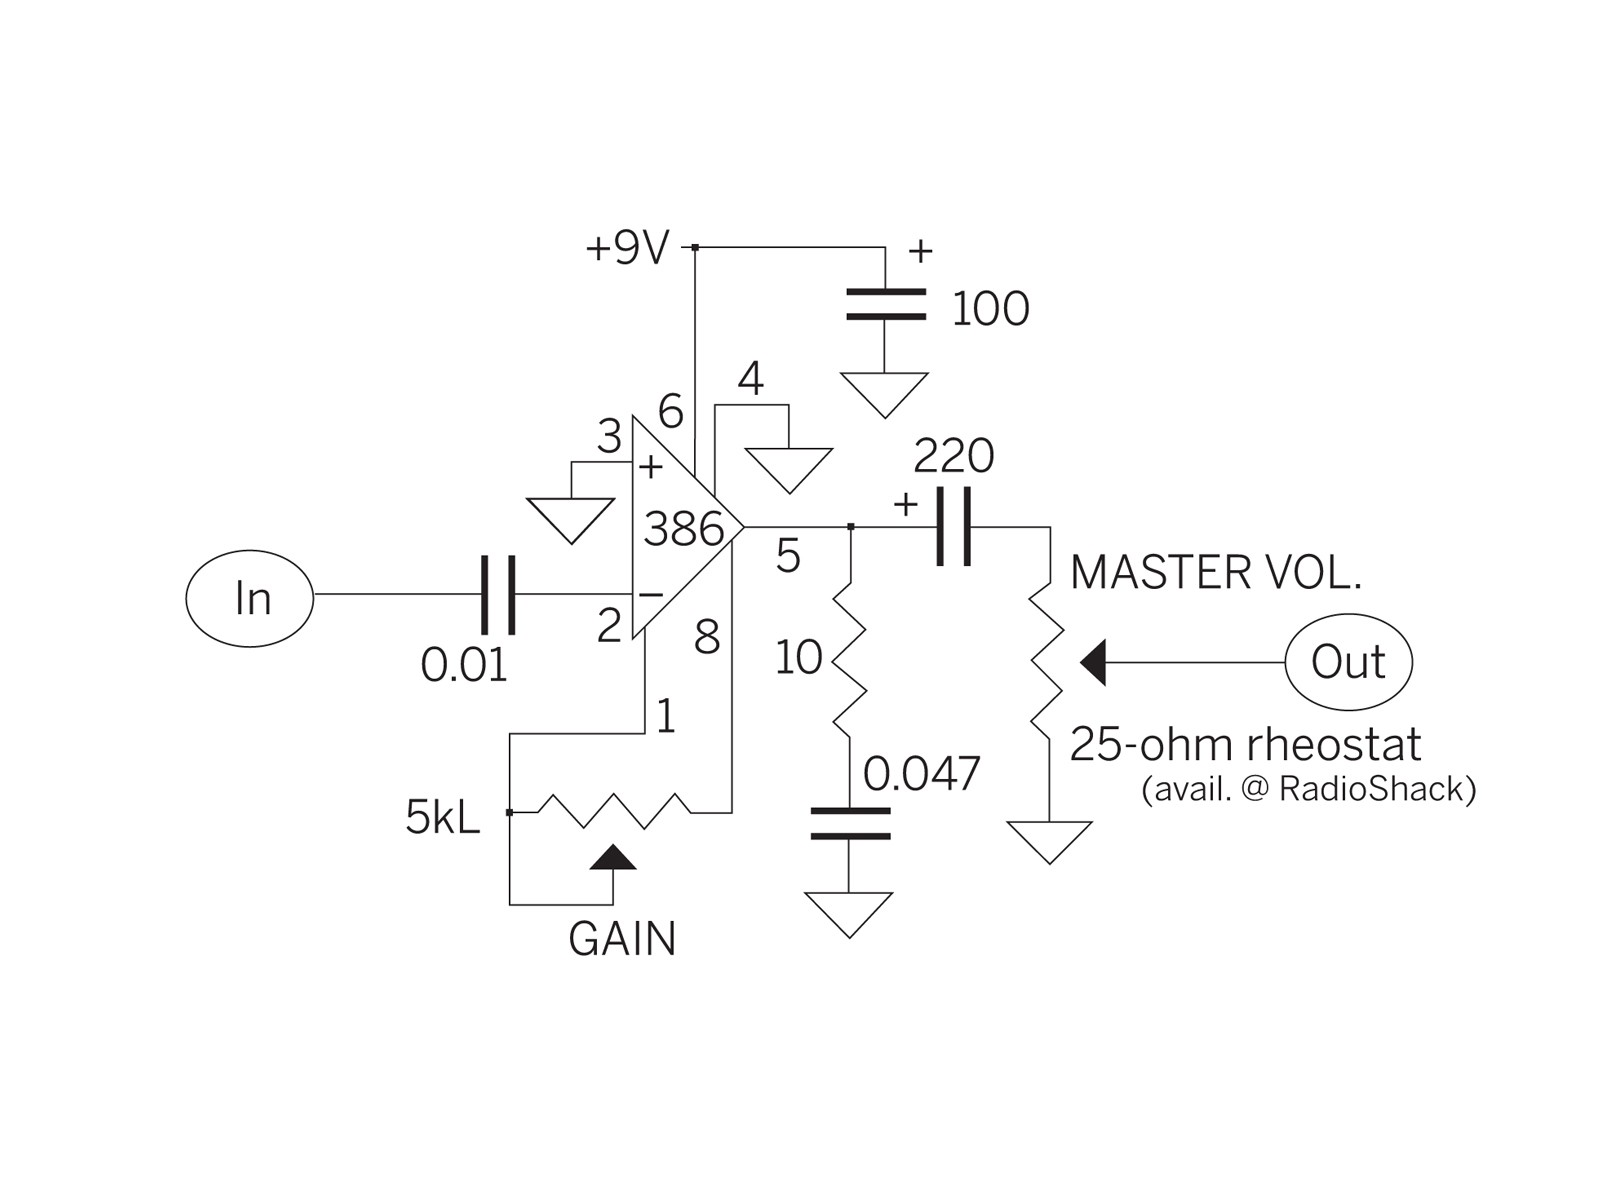 The only thing I changed was that I power the circuit with 12v instead of 9v It is possible to power this circuit with a 9v battery